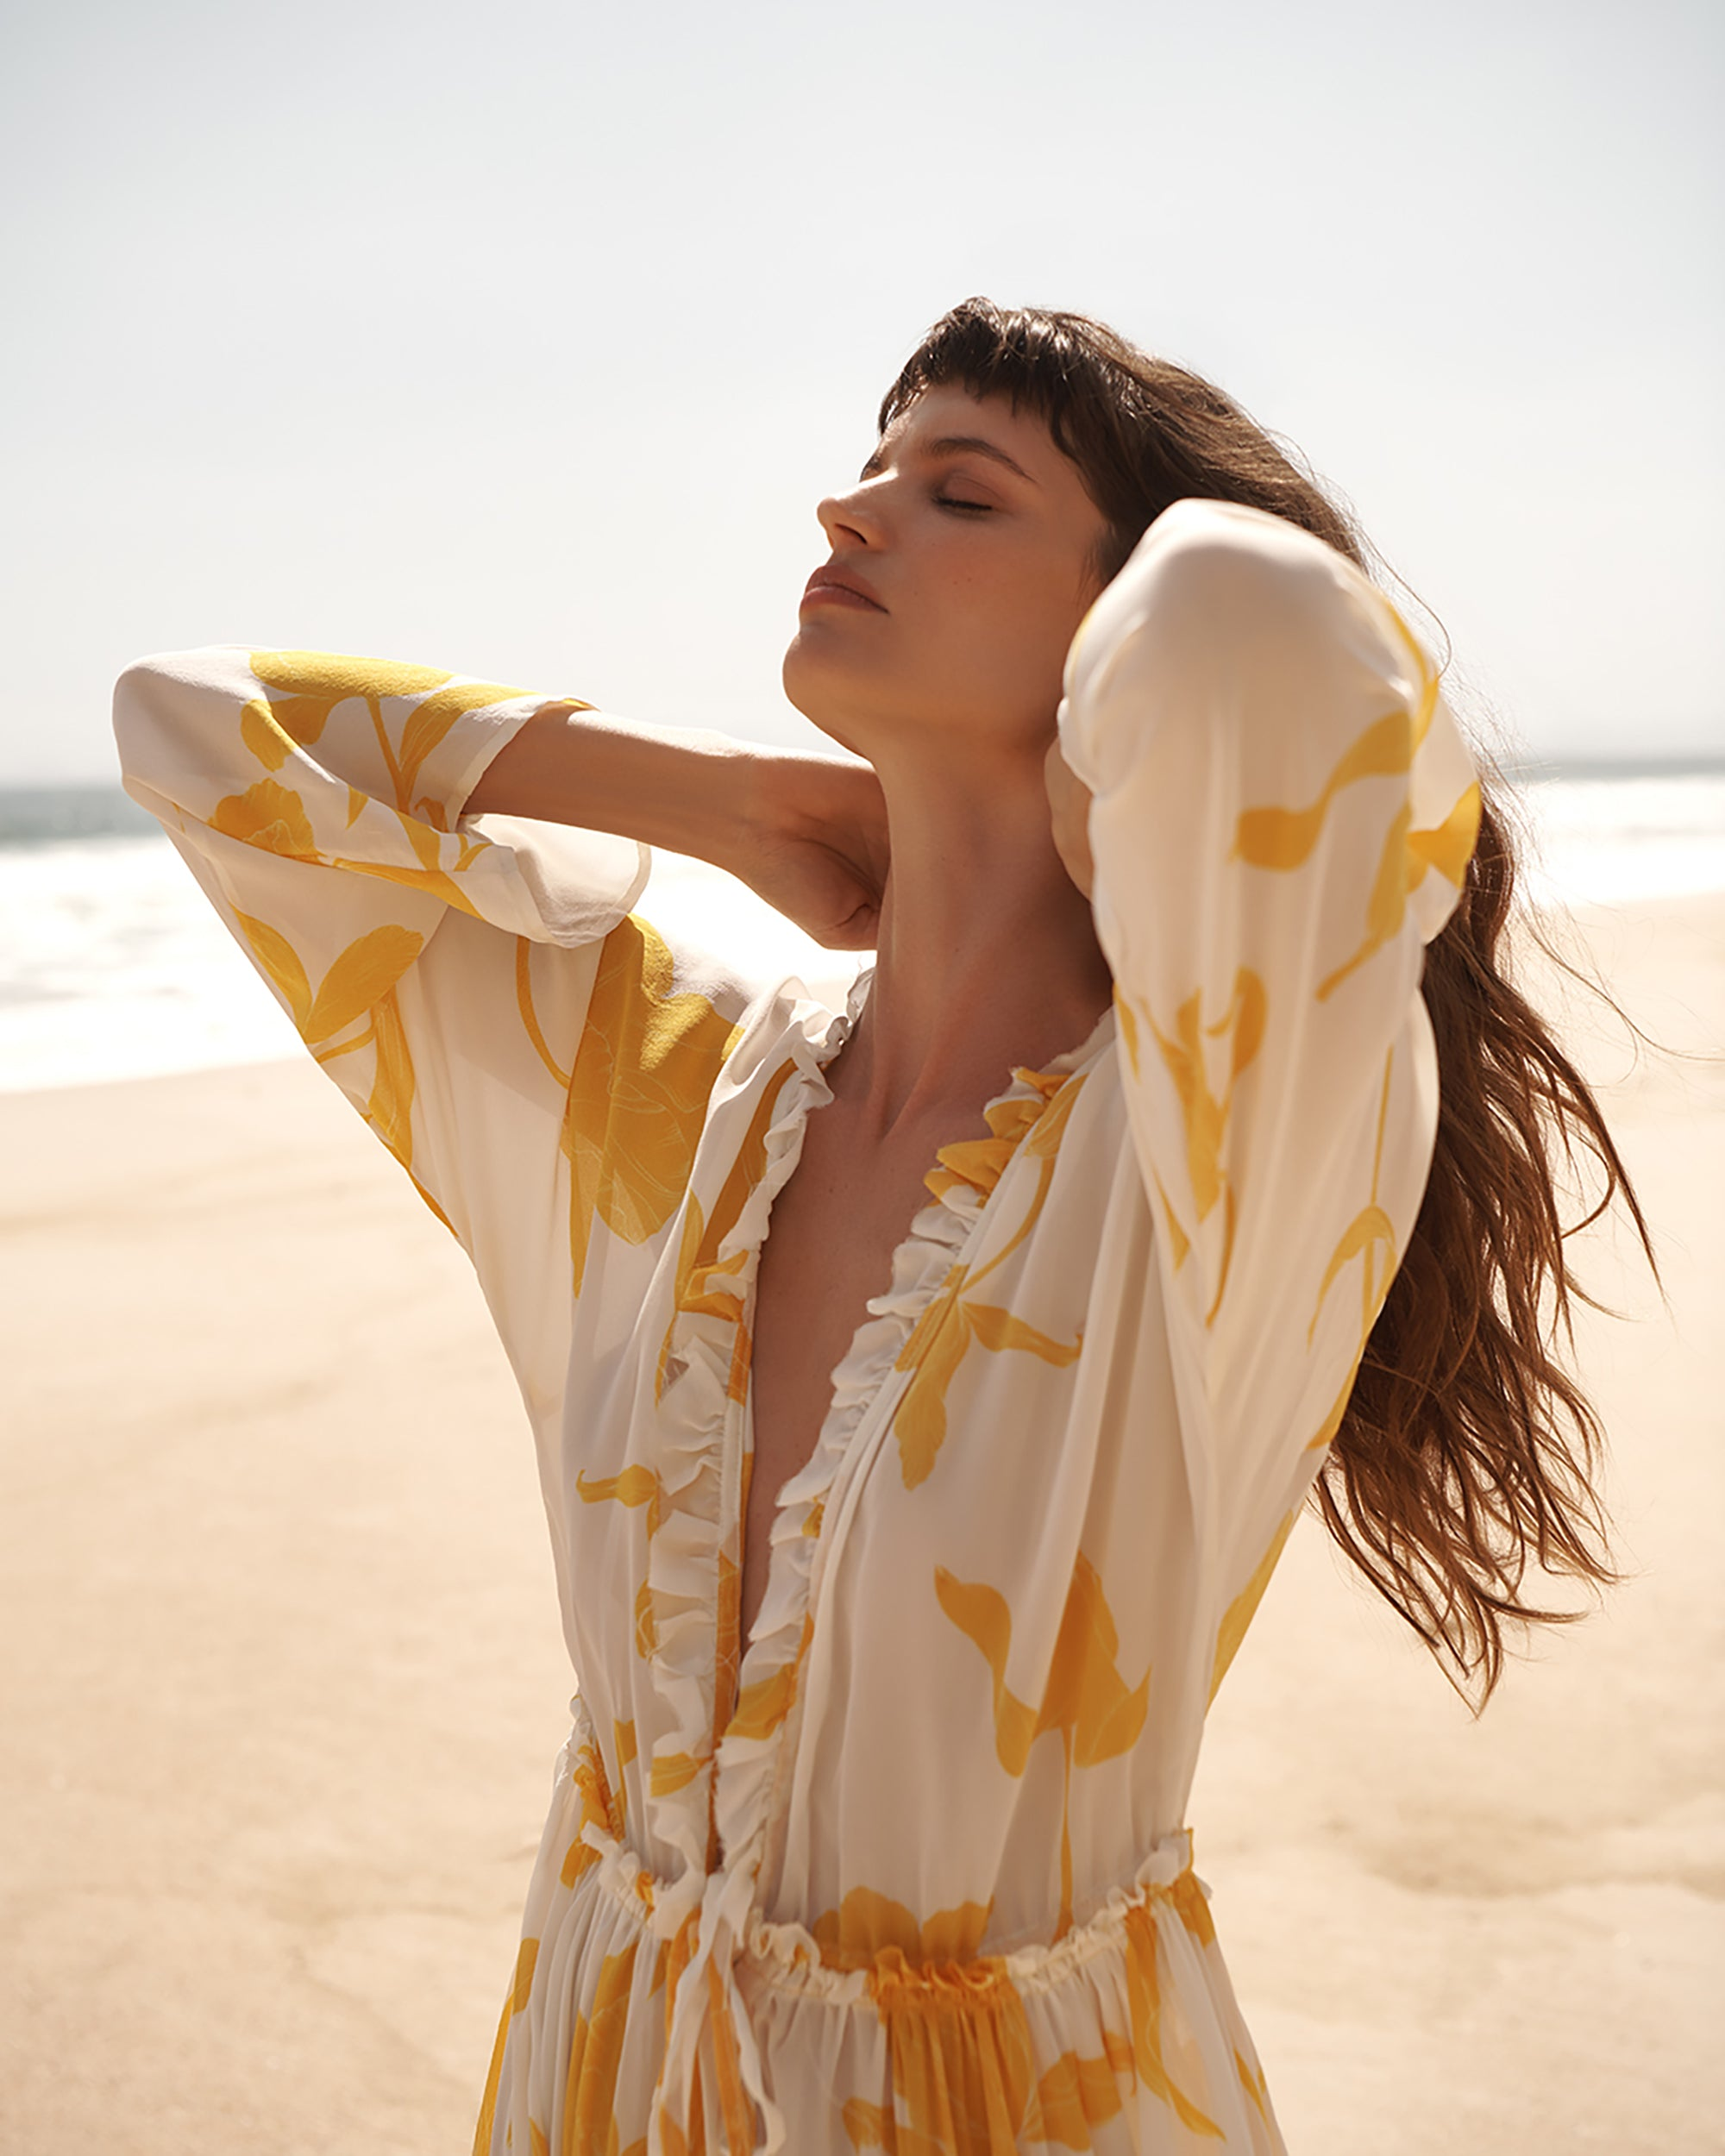 EVARAE Talia Maxi Dress in Silk Flower of Joy Creme. Sustainable swimwear and ethical resort wear.